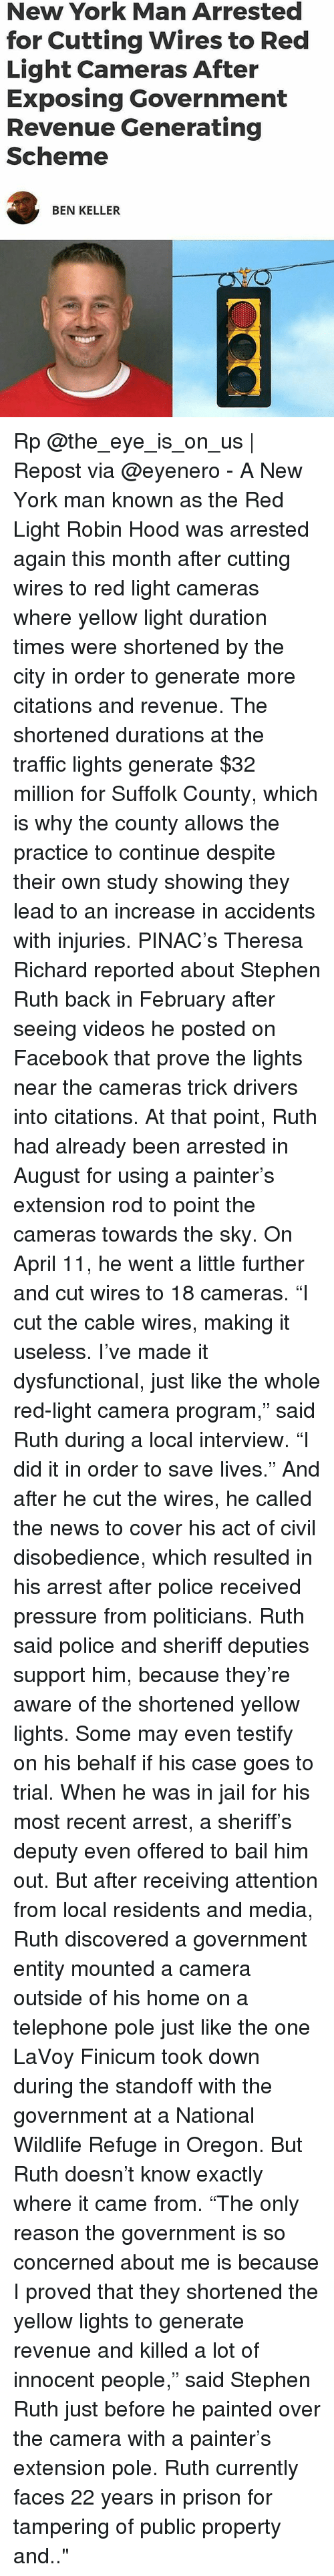 """painters: New York Man Arrested  for Cutting Wires to Red  Light Cameras After  Exposing Government  Revenue Generating  Scheme  BEN KELLER Rp @the_eye_is_on_us 